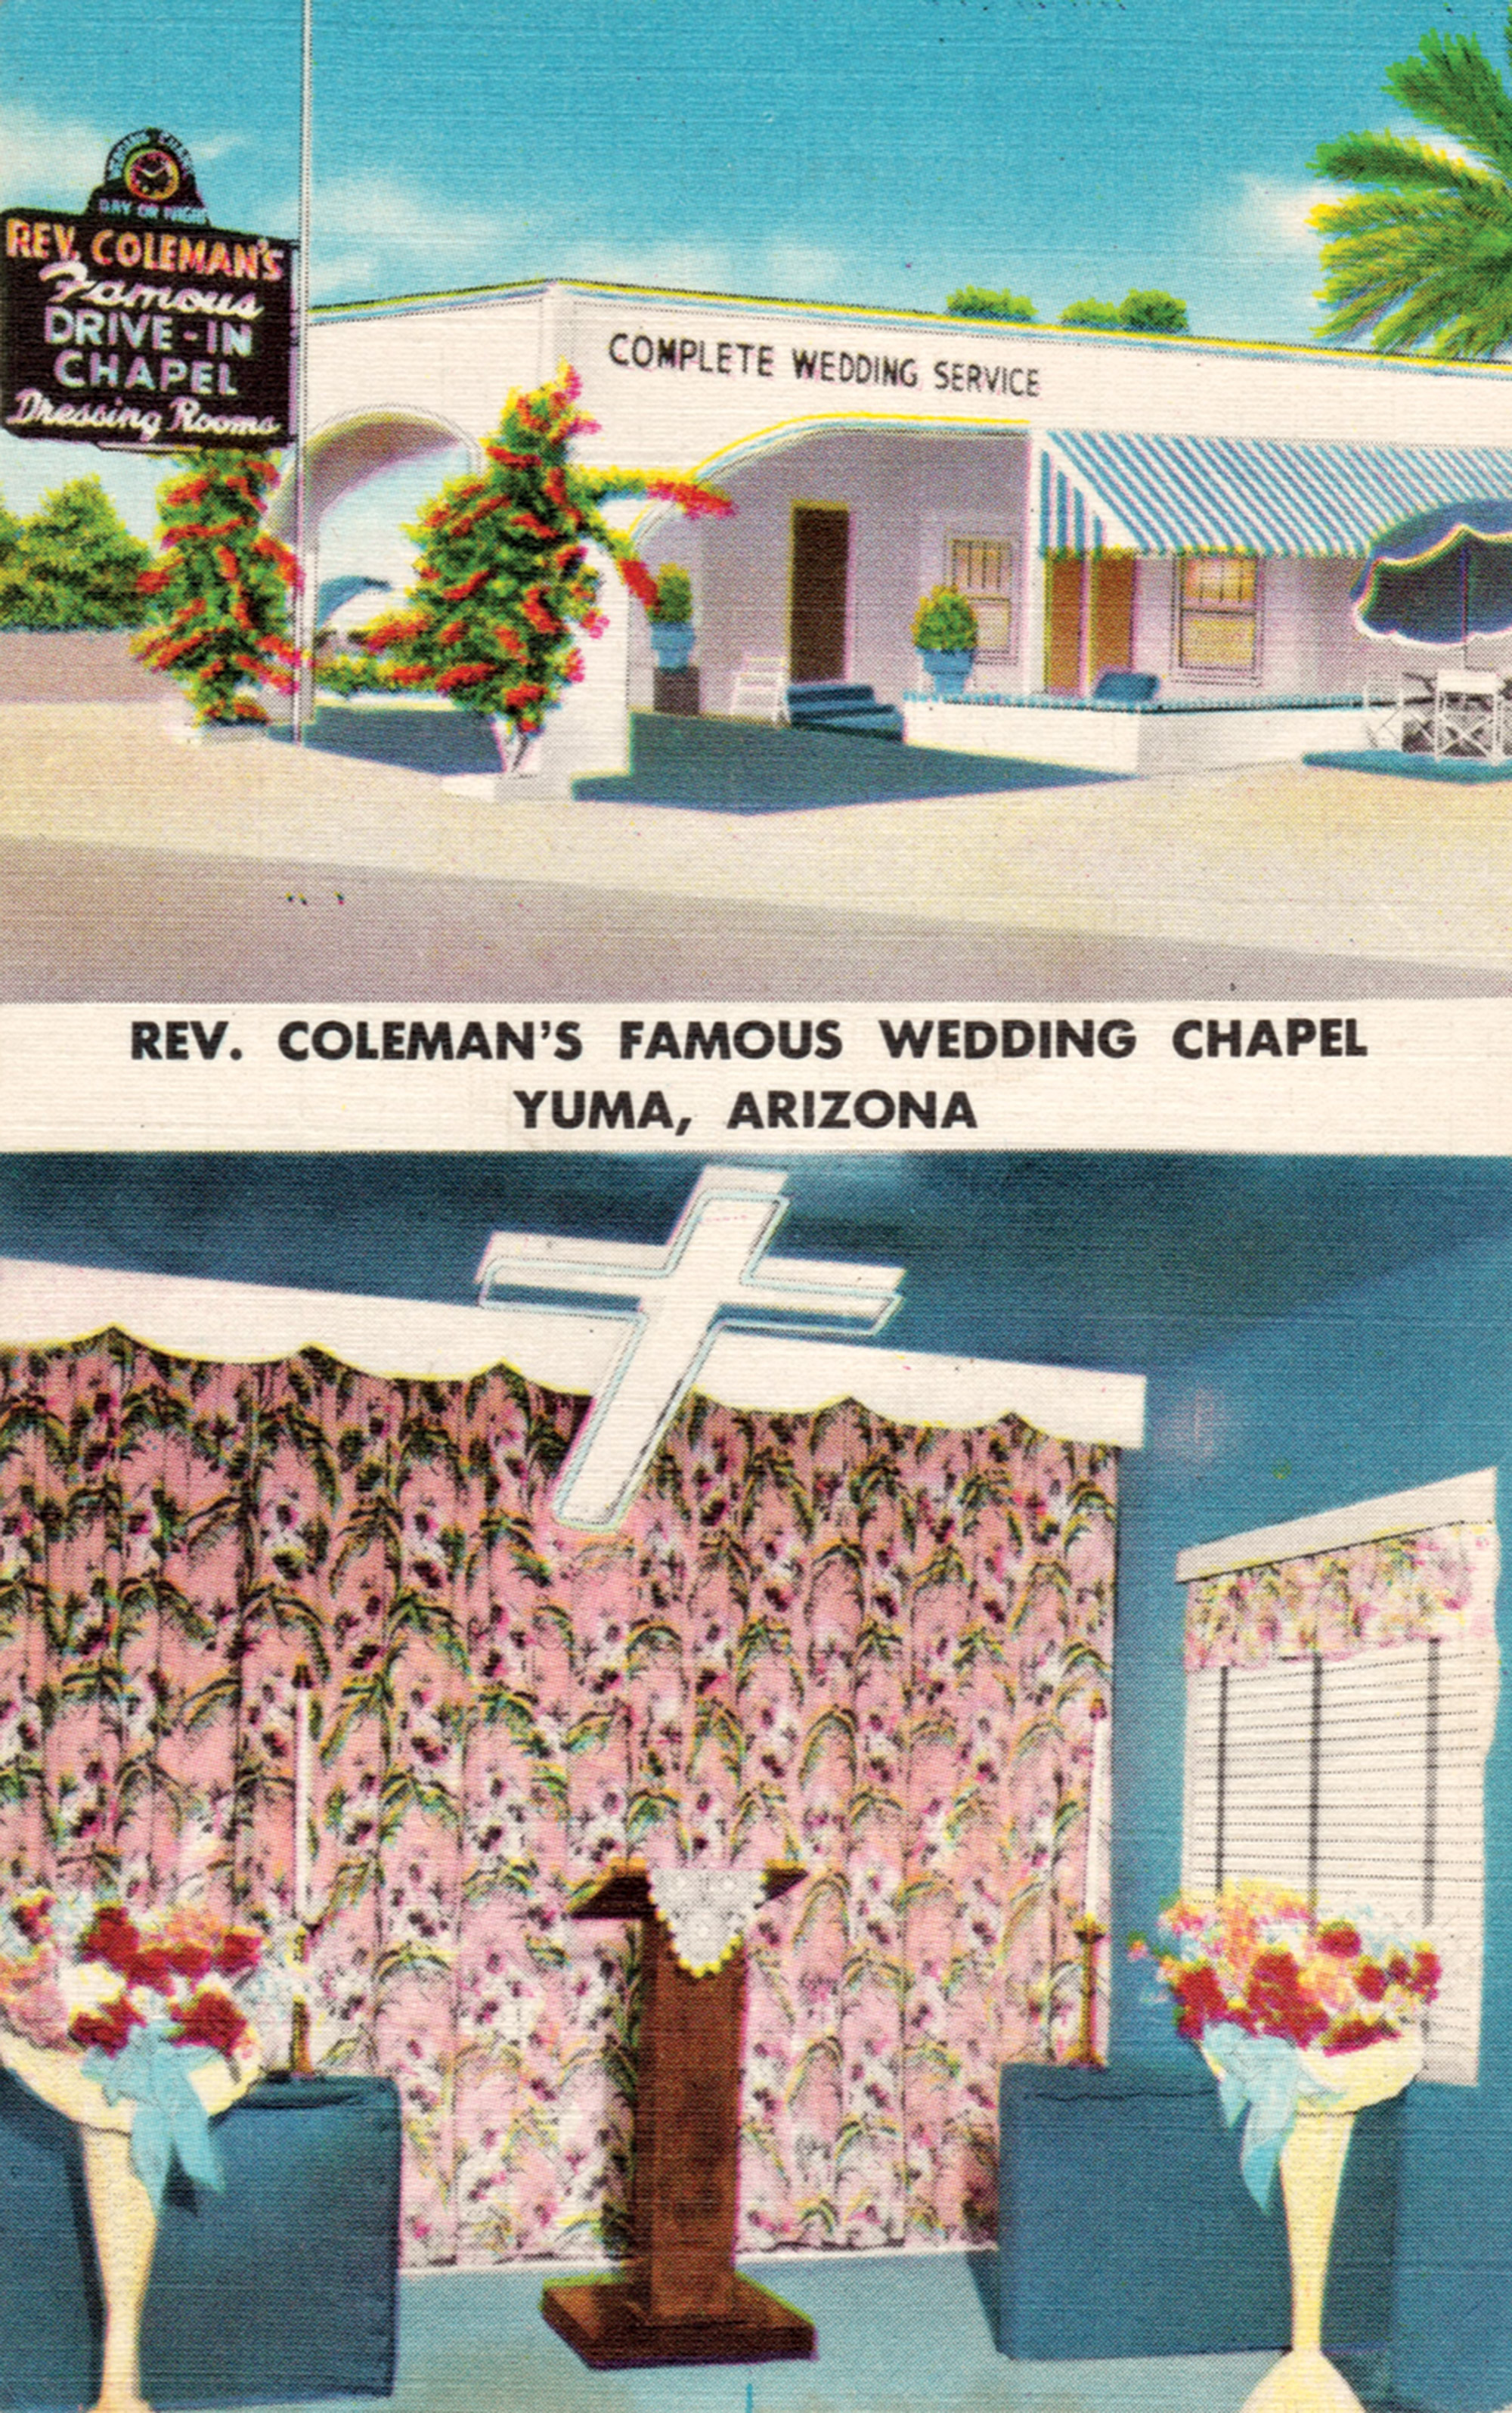 Reverend Coleman's Drive-in Chapel, 1930s; Photo courtesy postcard collection of Douglas C. Towne